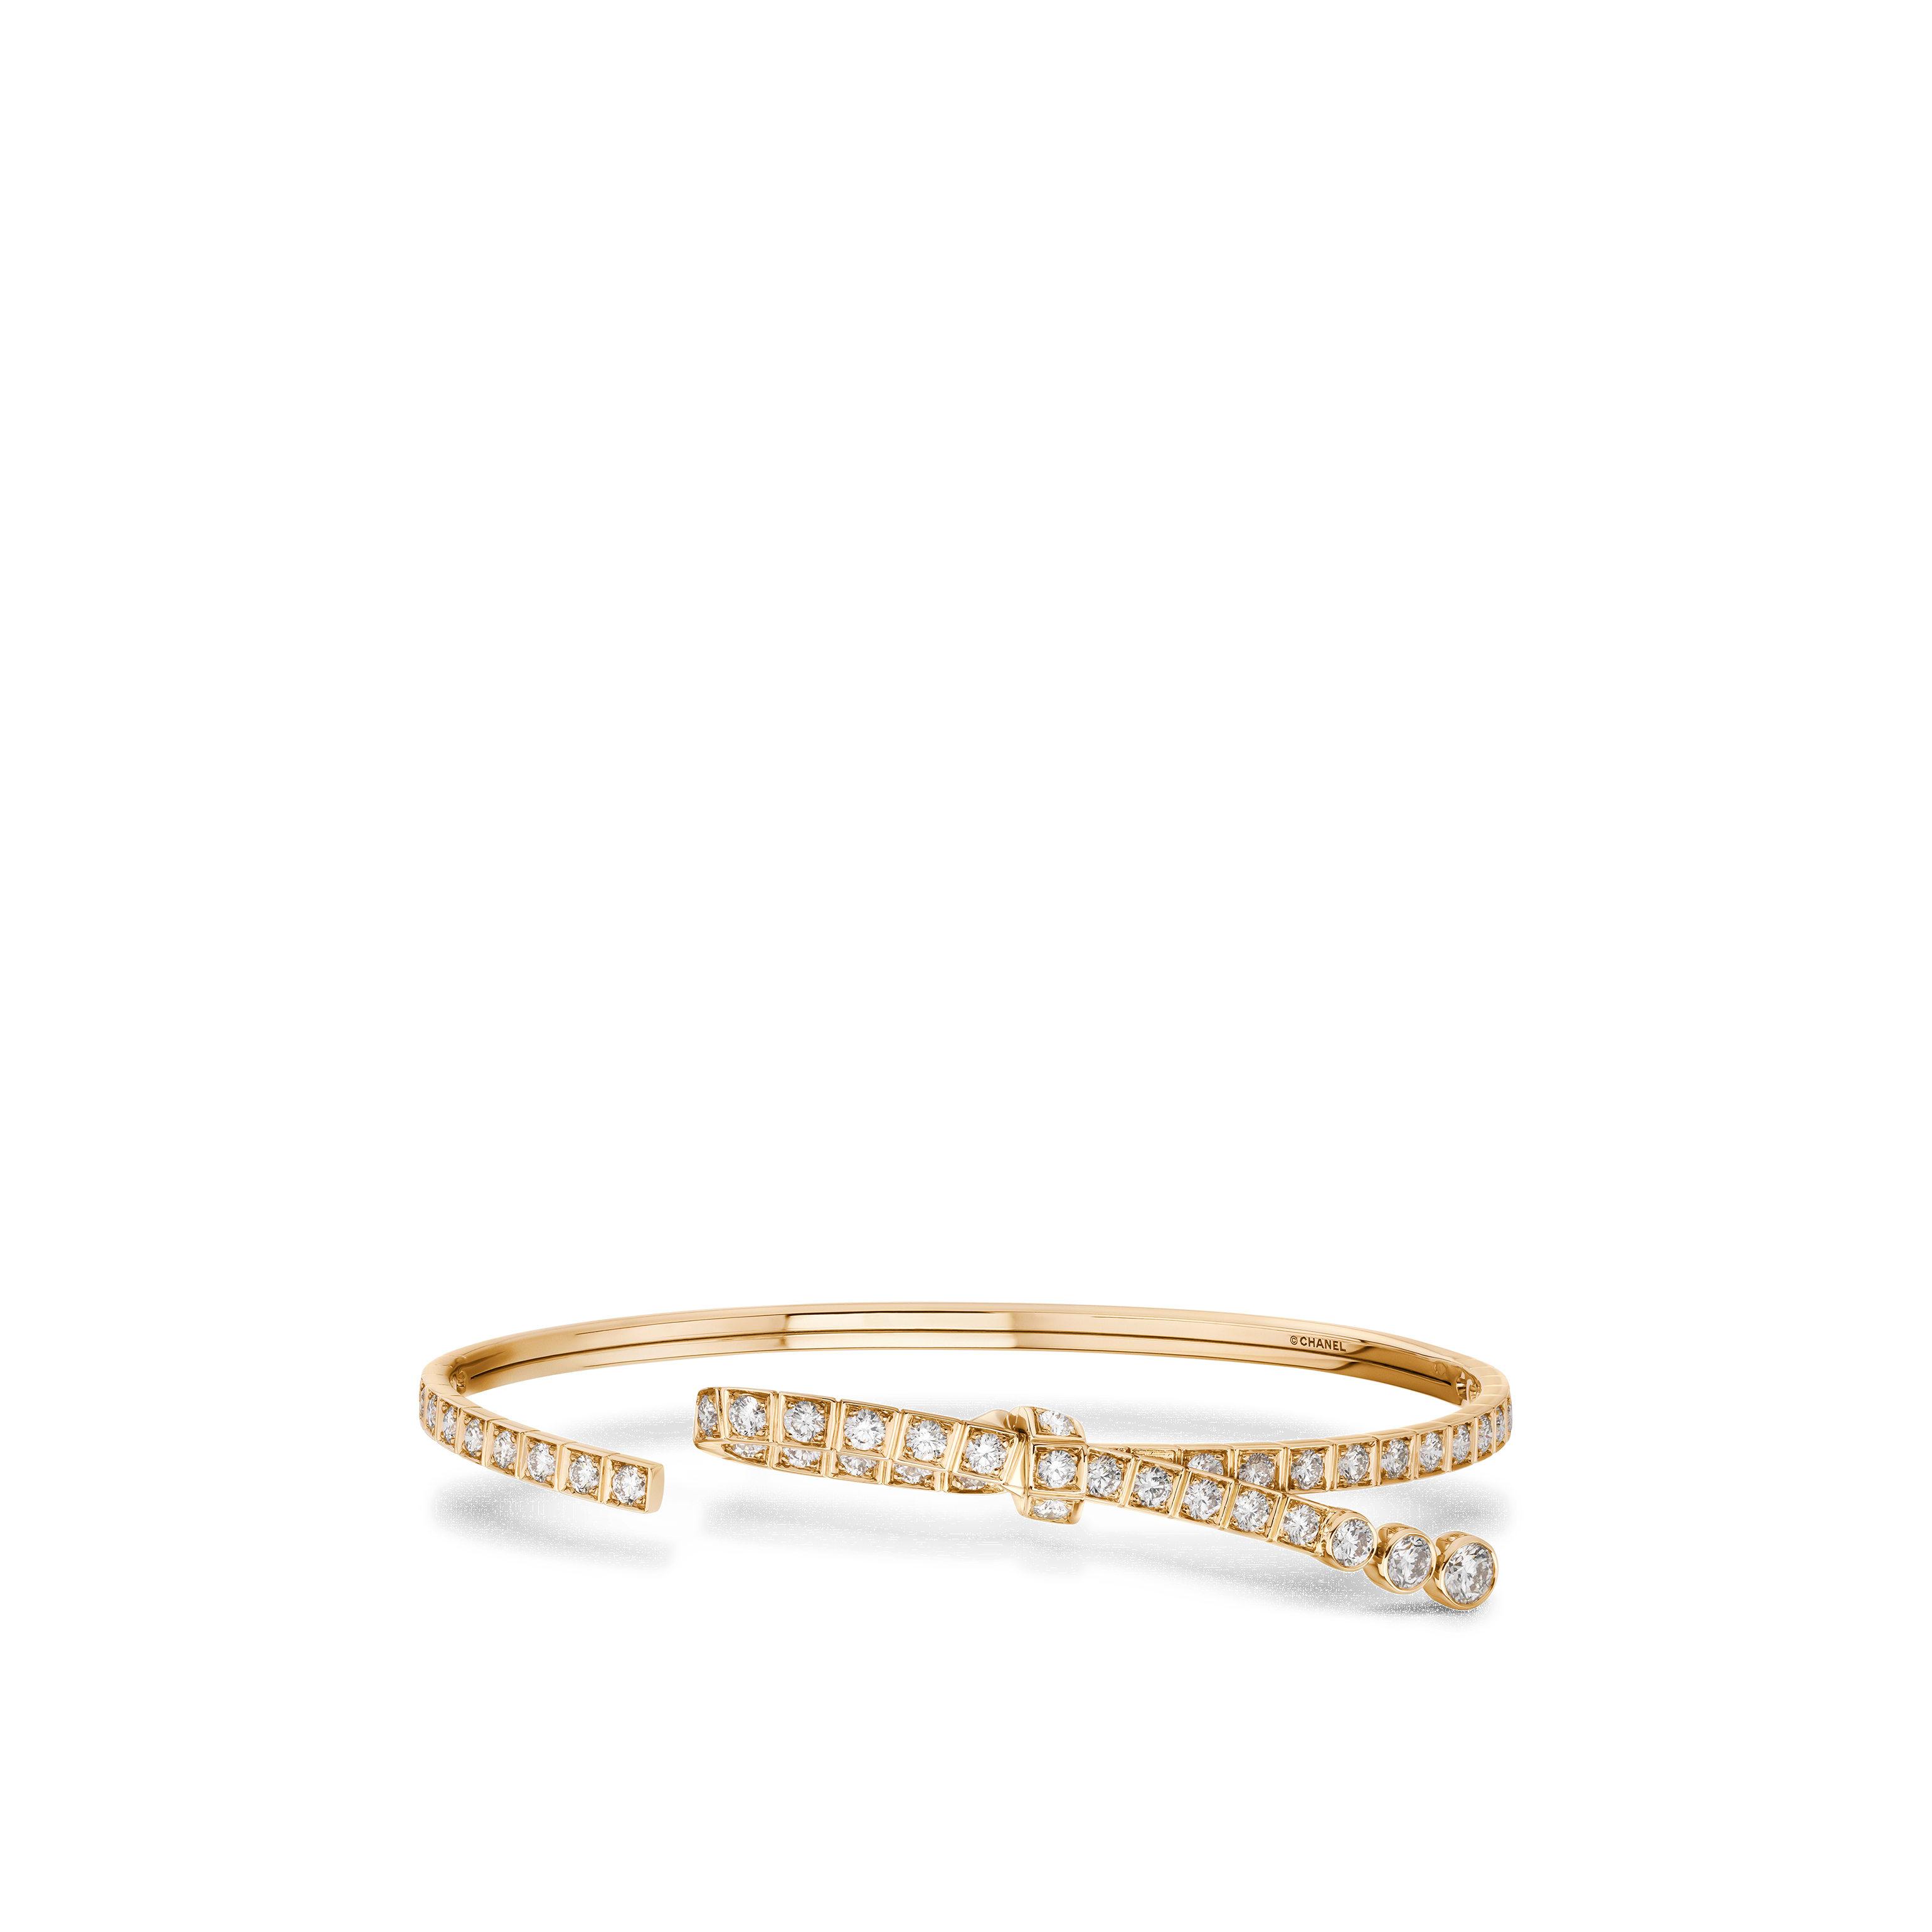 Ruban bracelet - 18K BEIGE GOLD, diamonds - CHANEL - Default view - see standard sized version